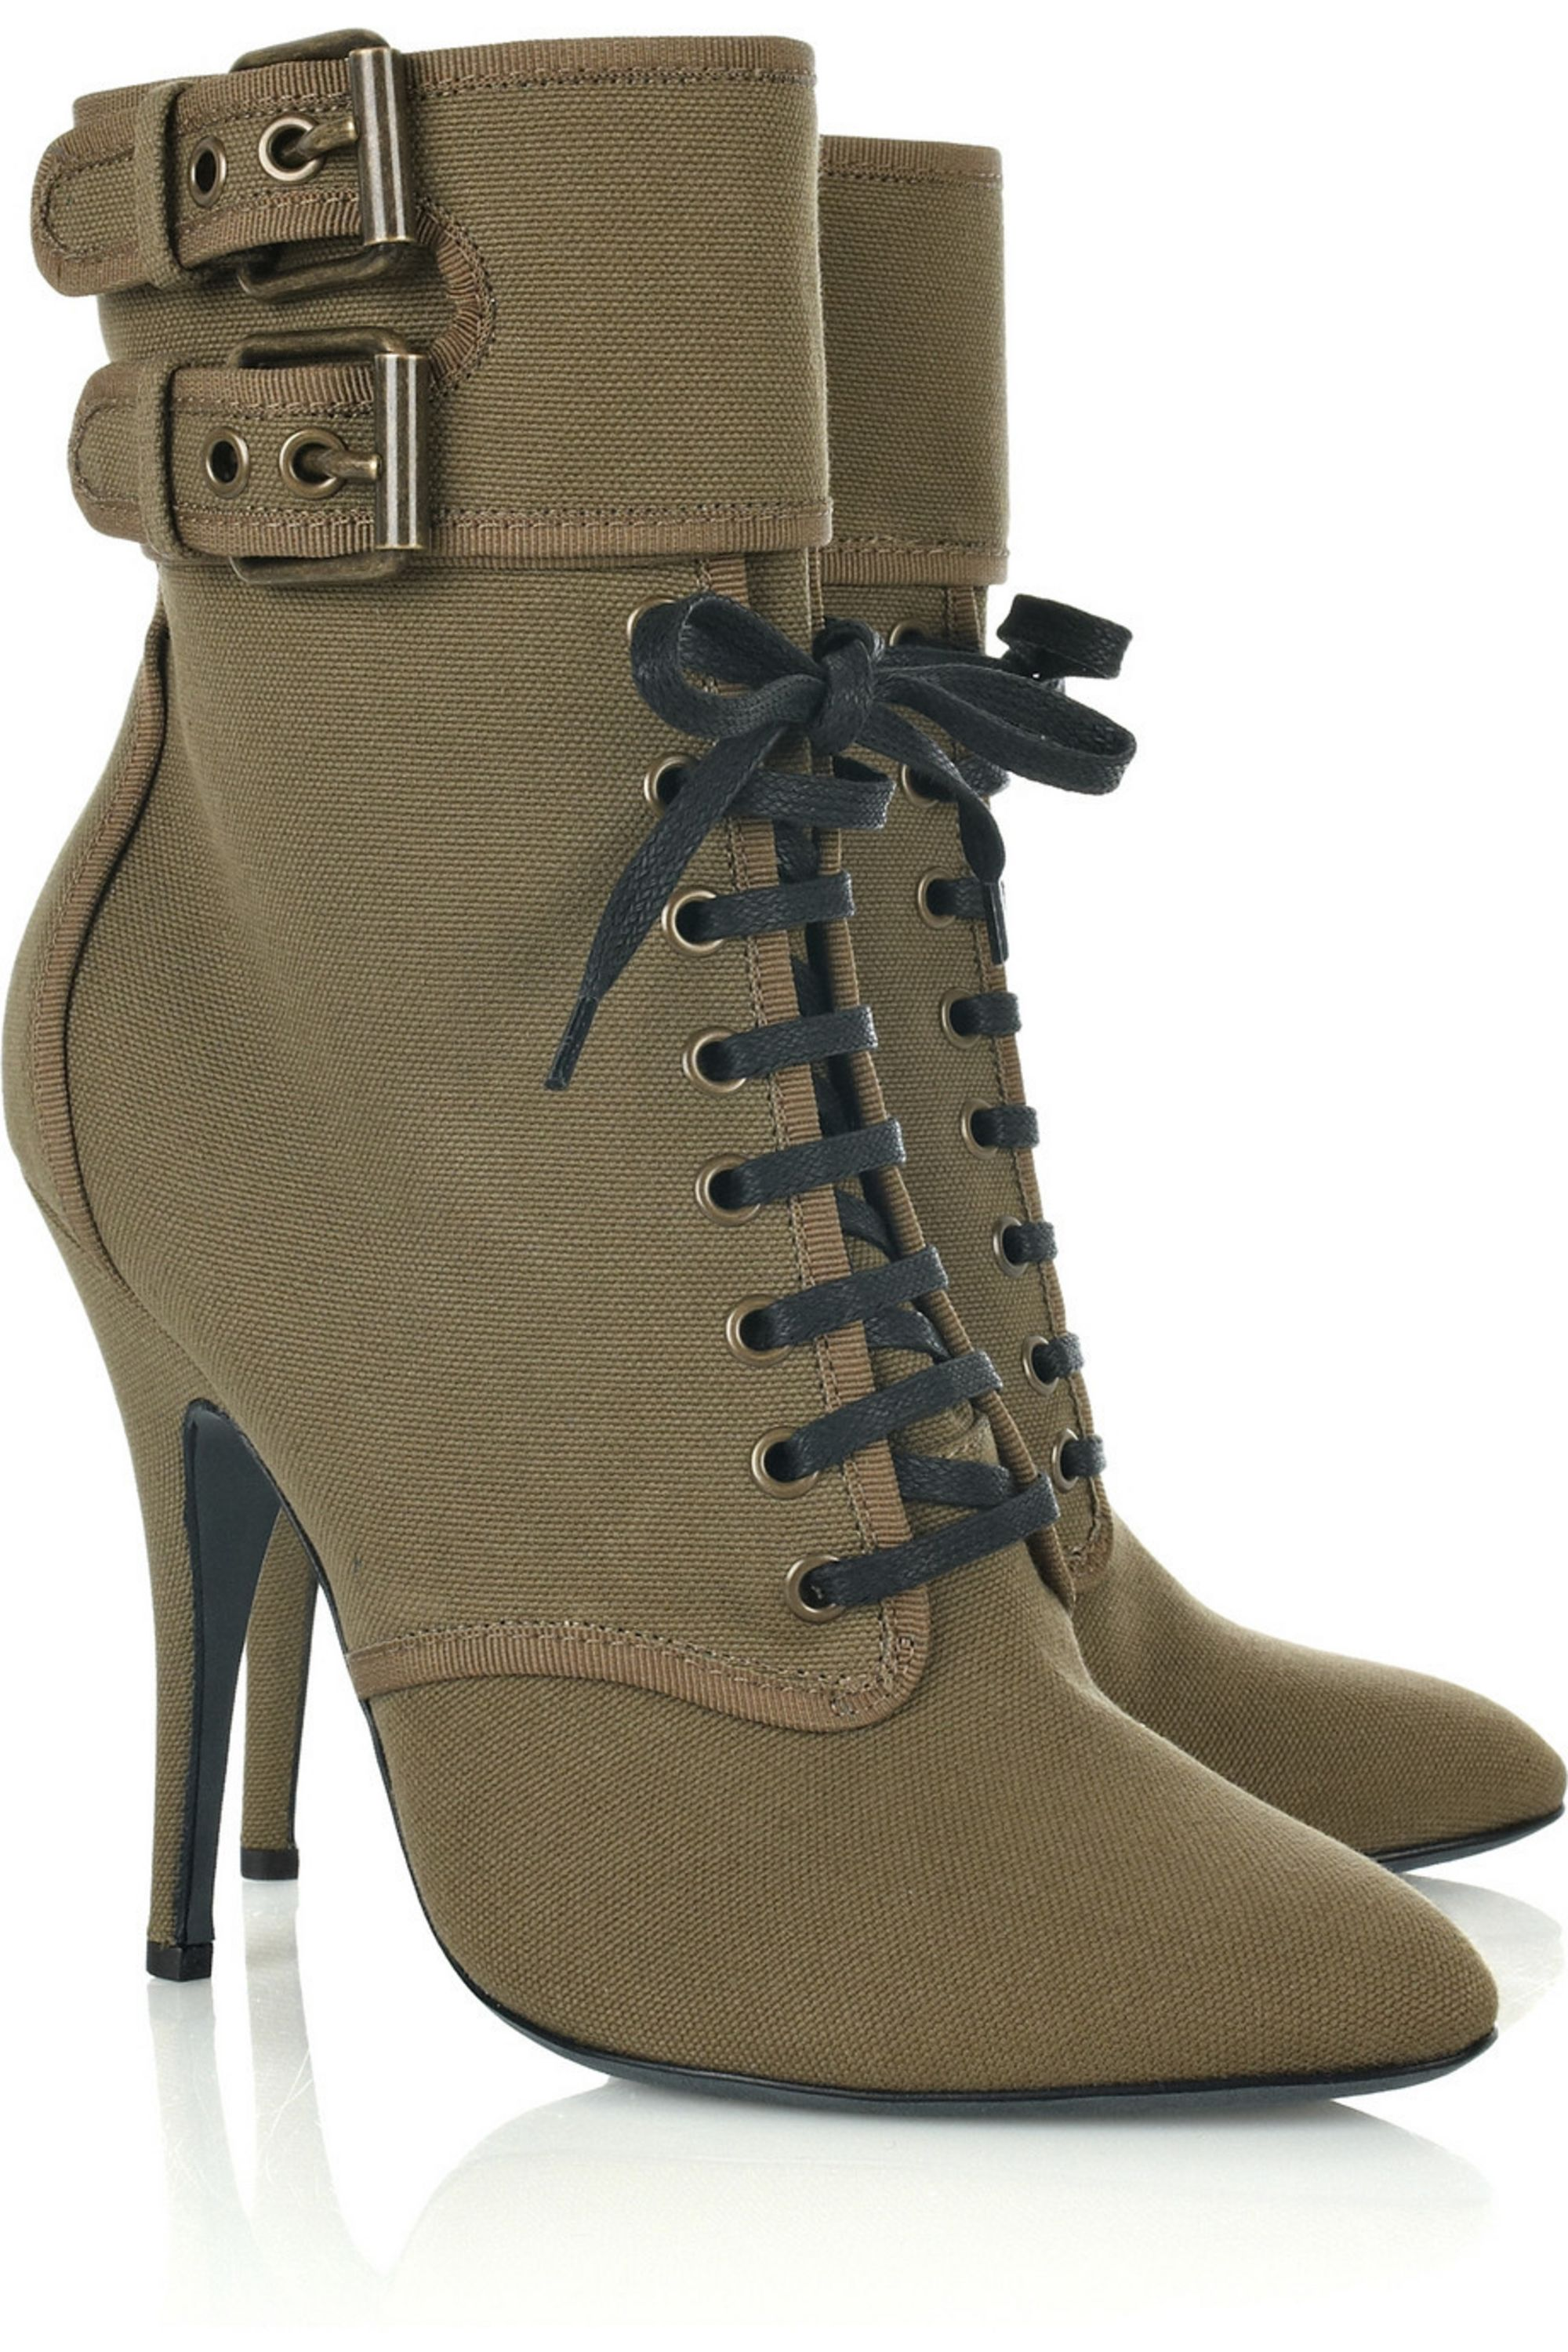 Sage green Lace-up canvas ankle boots